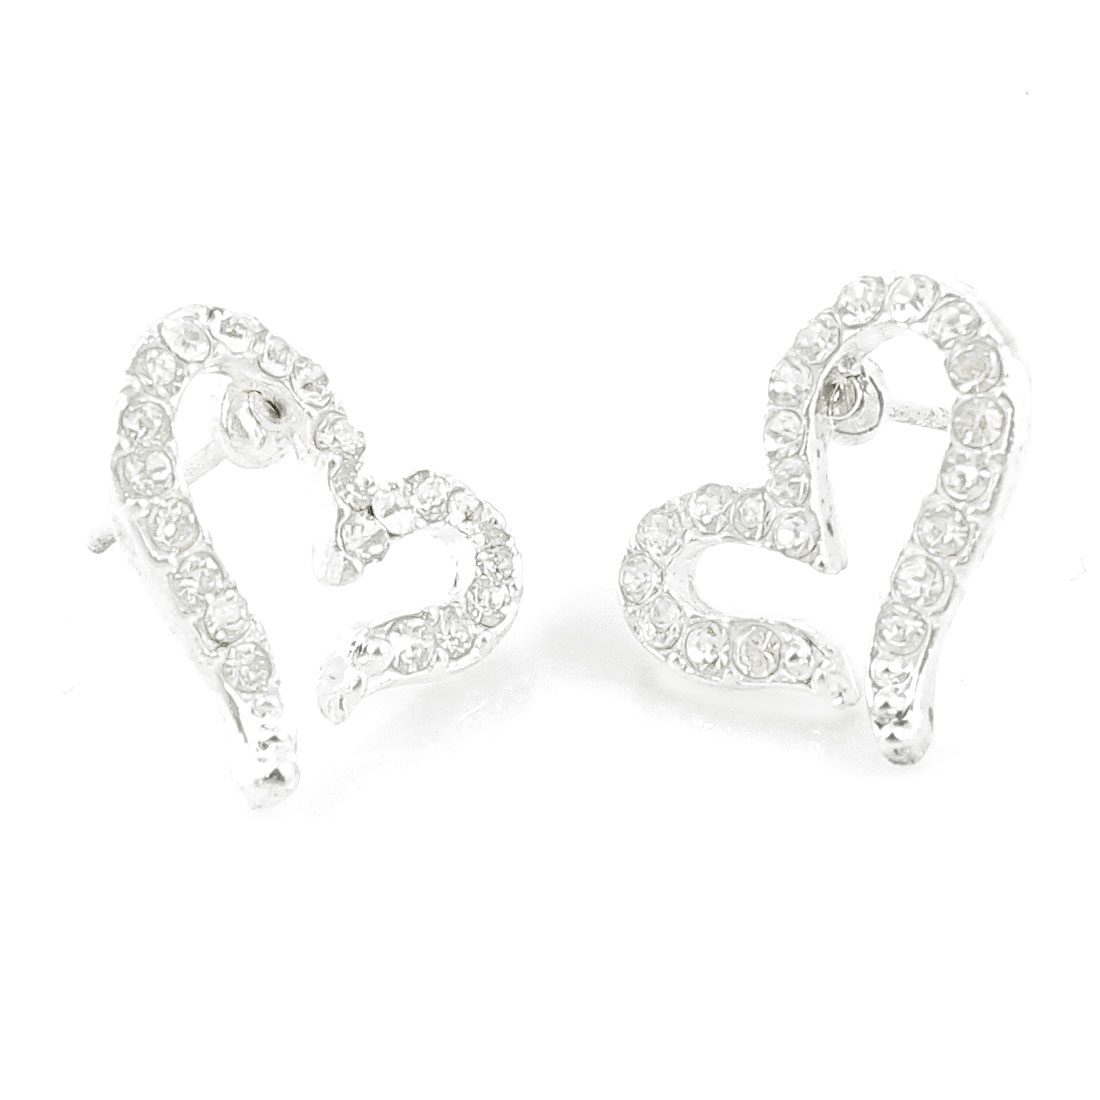 Ladies Rhinestone Silver Tone Heart Shaped Ear Stud Earrings Eardrops Pair